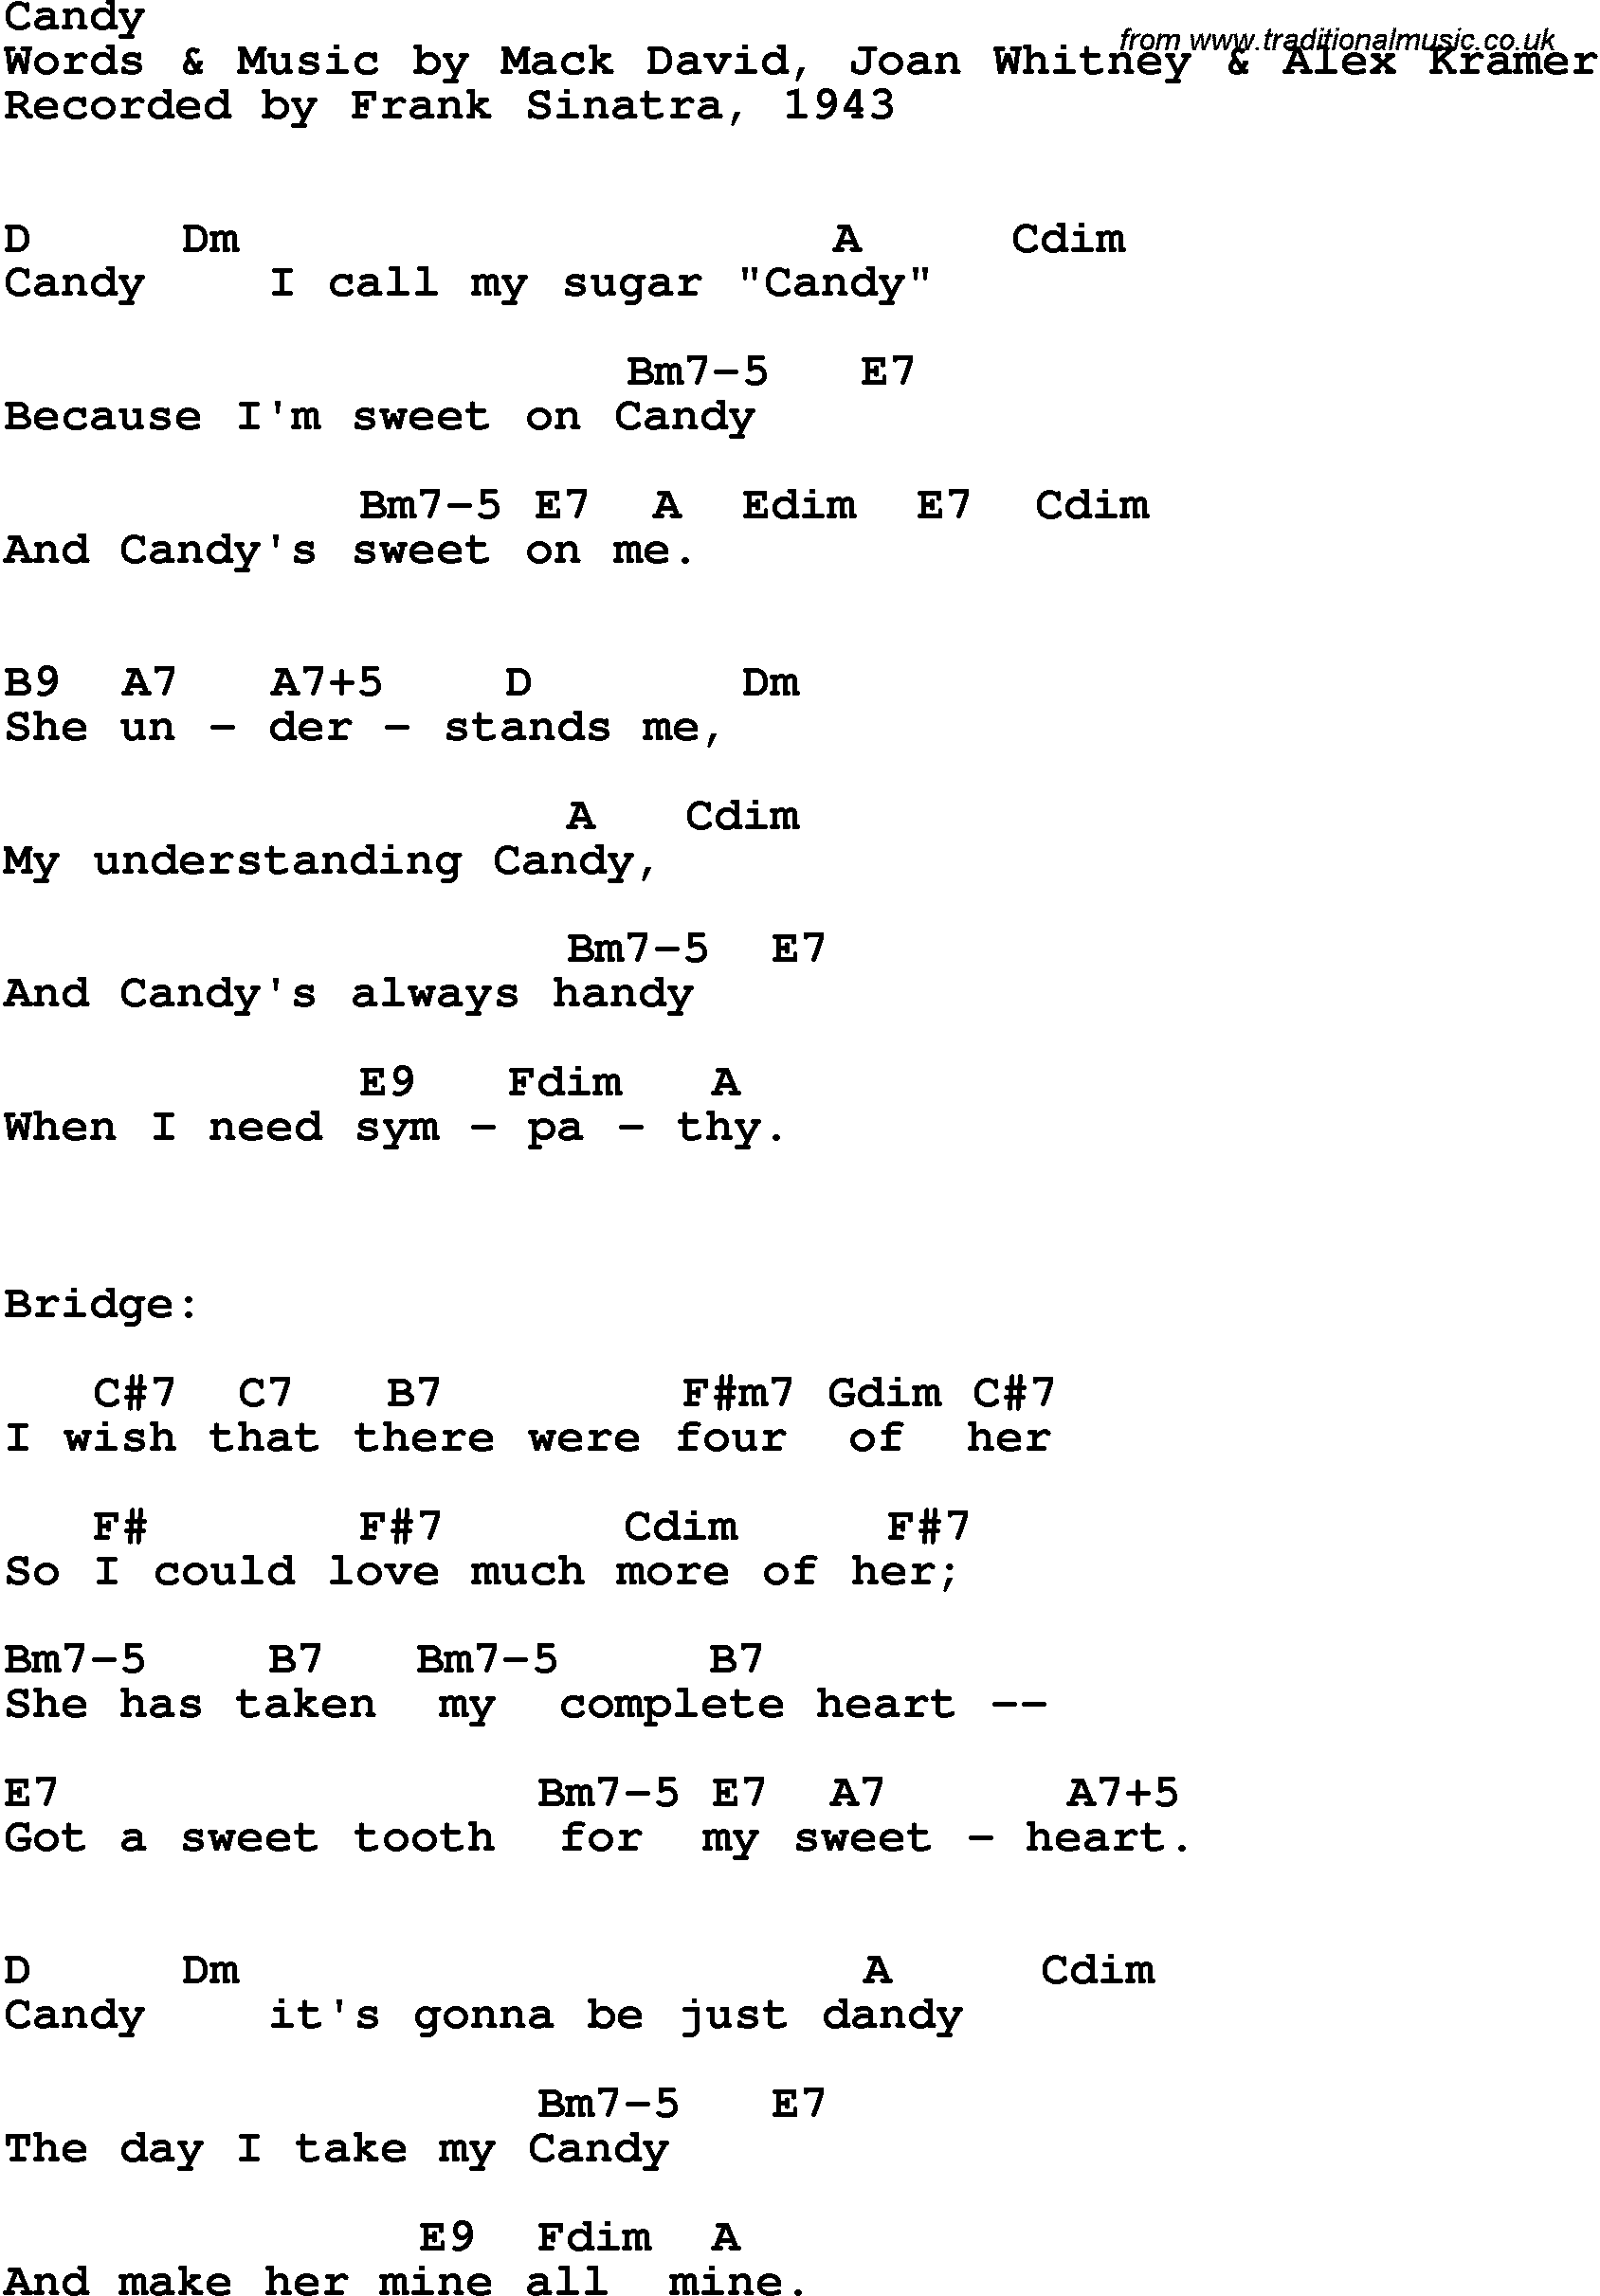 Song Lyrics With Guitar Chords For Candy Frank Sinatra 1943